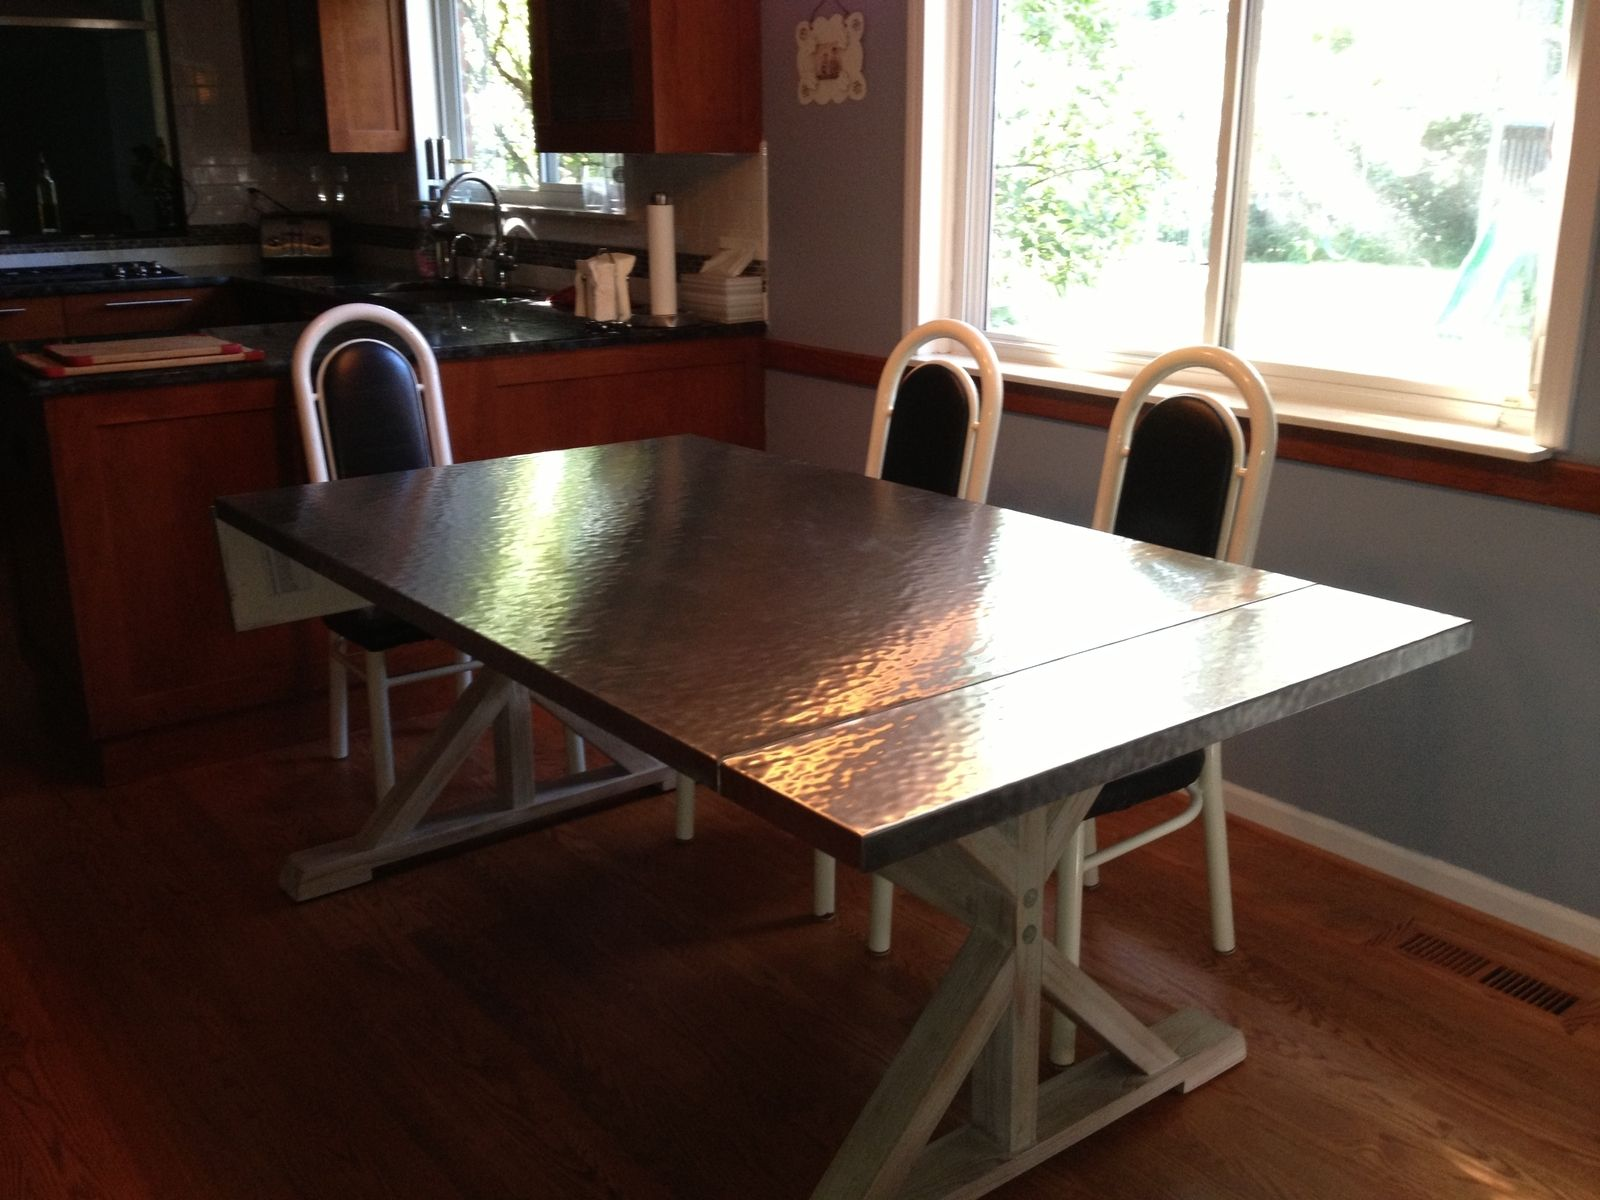 Handmade custom hammered stainless steel dining table by bk renovations inc - Steel kitchen tables ...